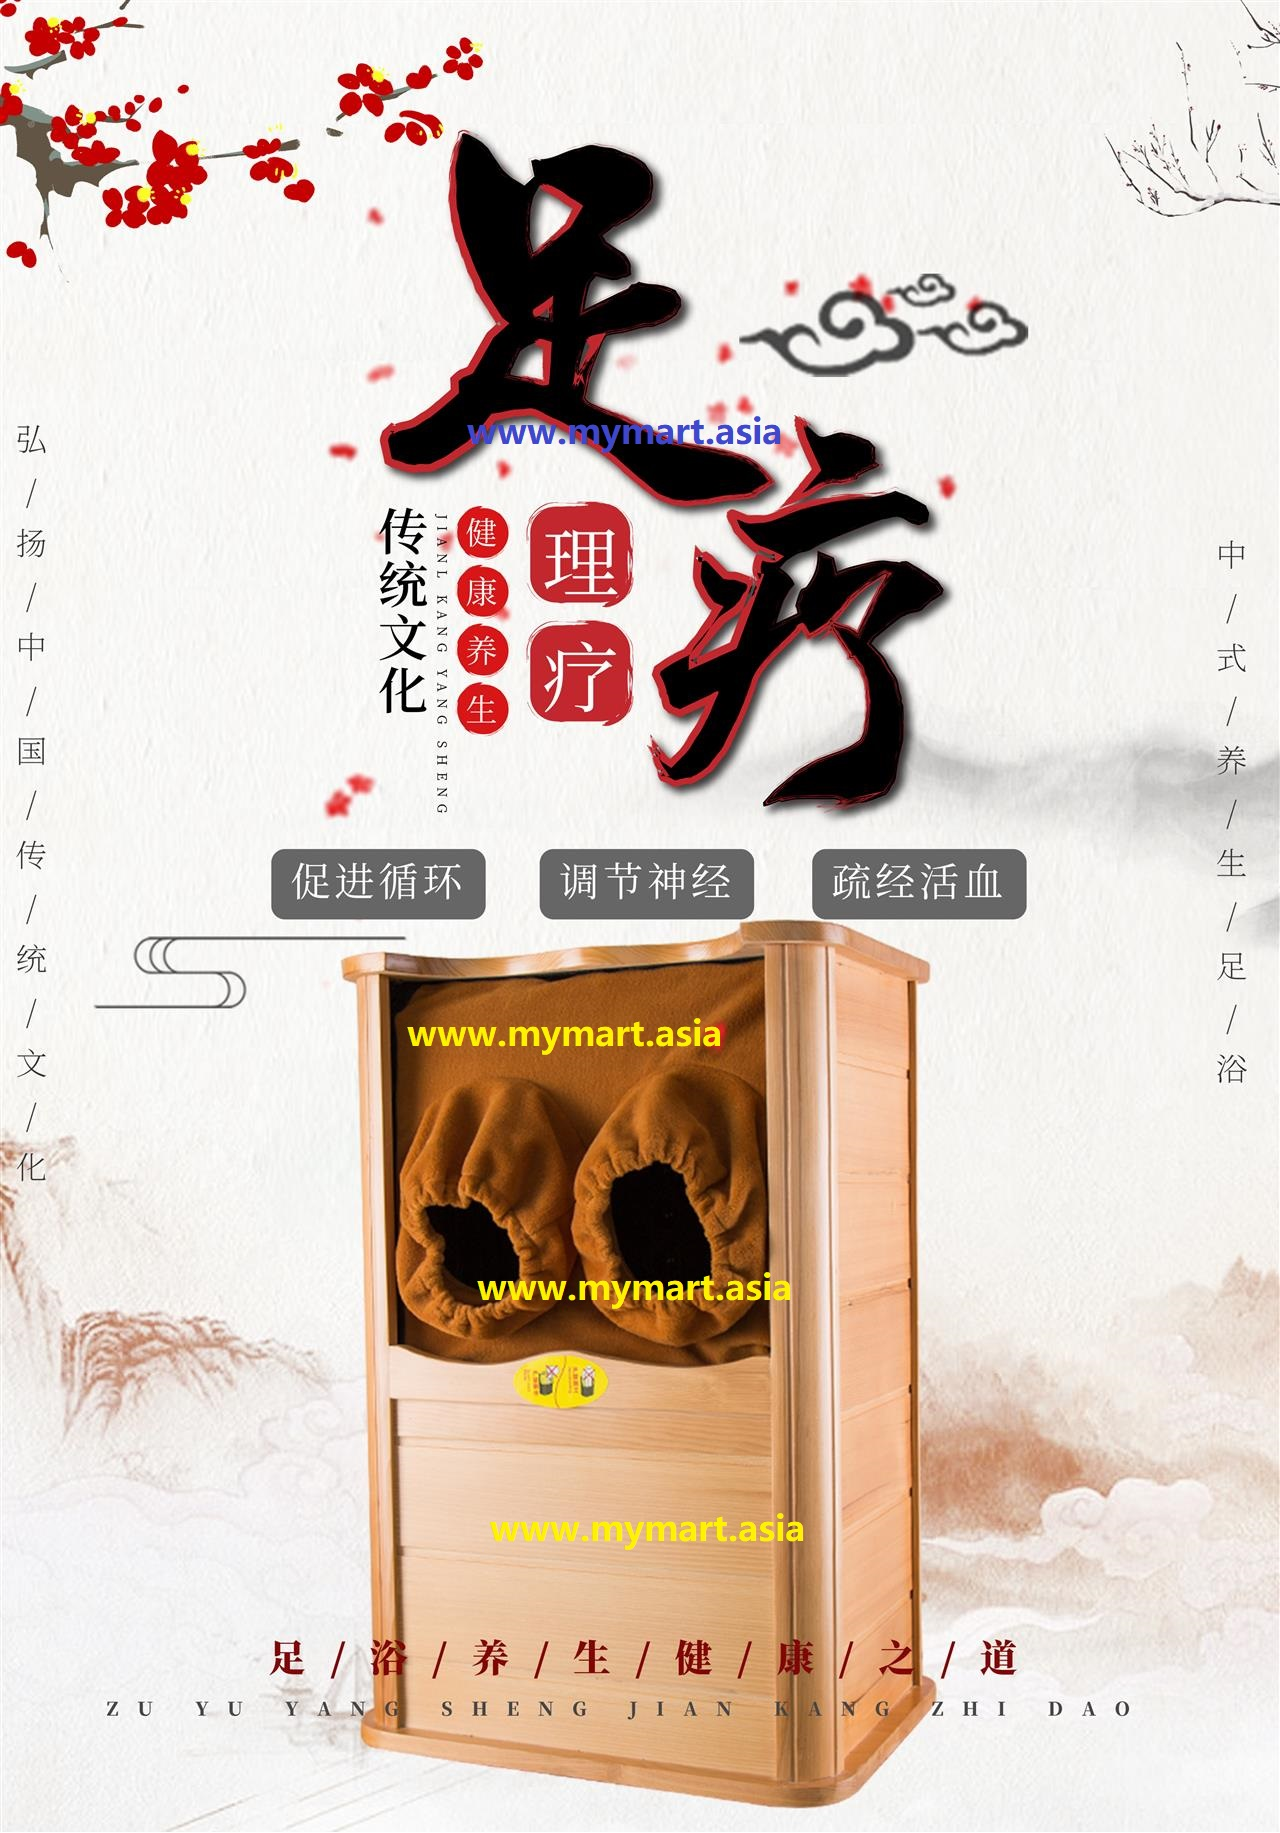 Foot Therapy promote blood circulation 足疗